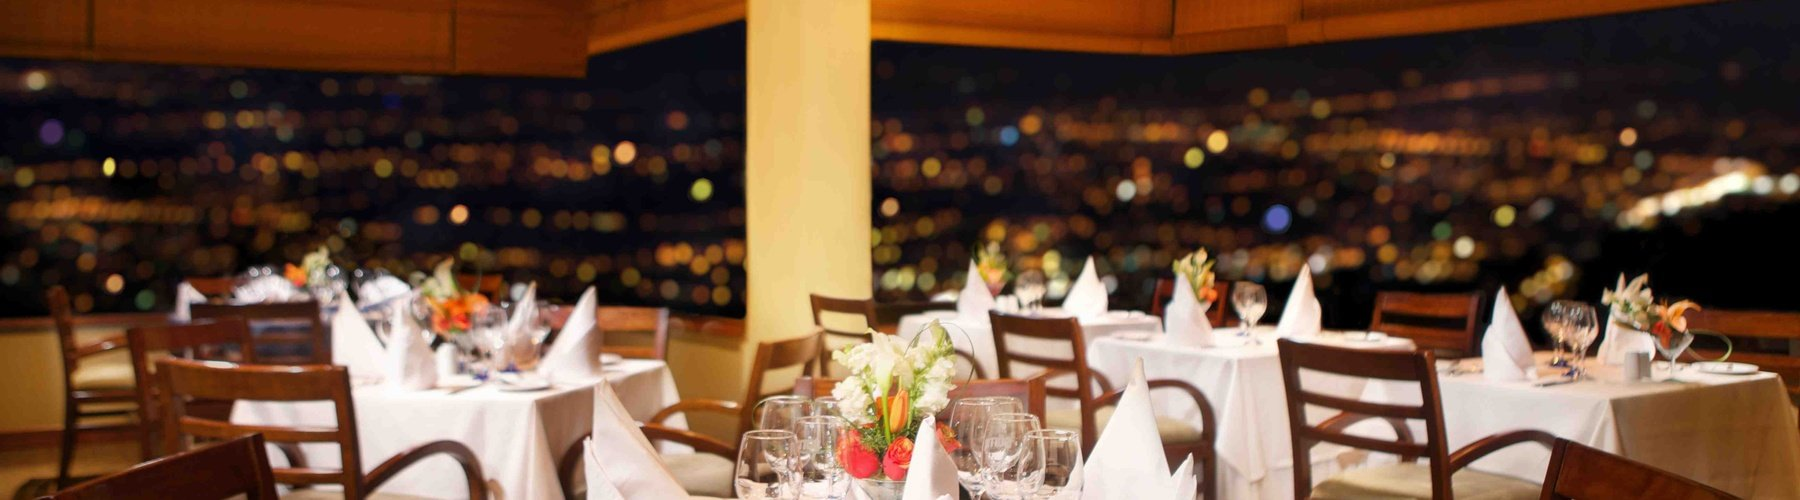 Restaurant - Hotel Quito By Sercotel